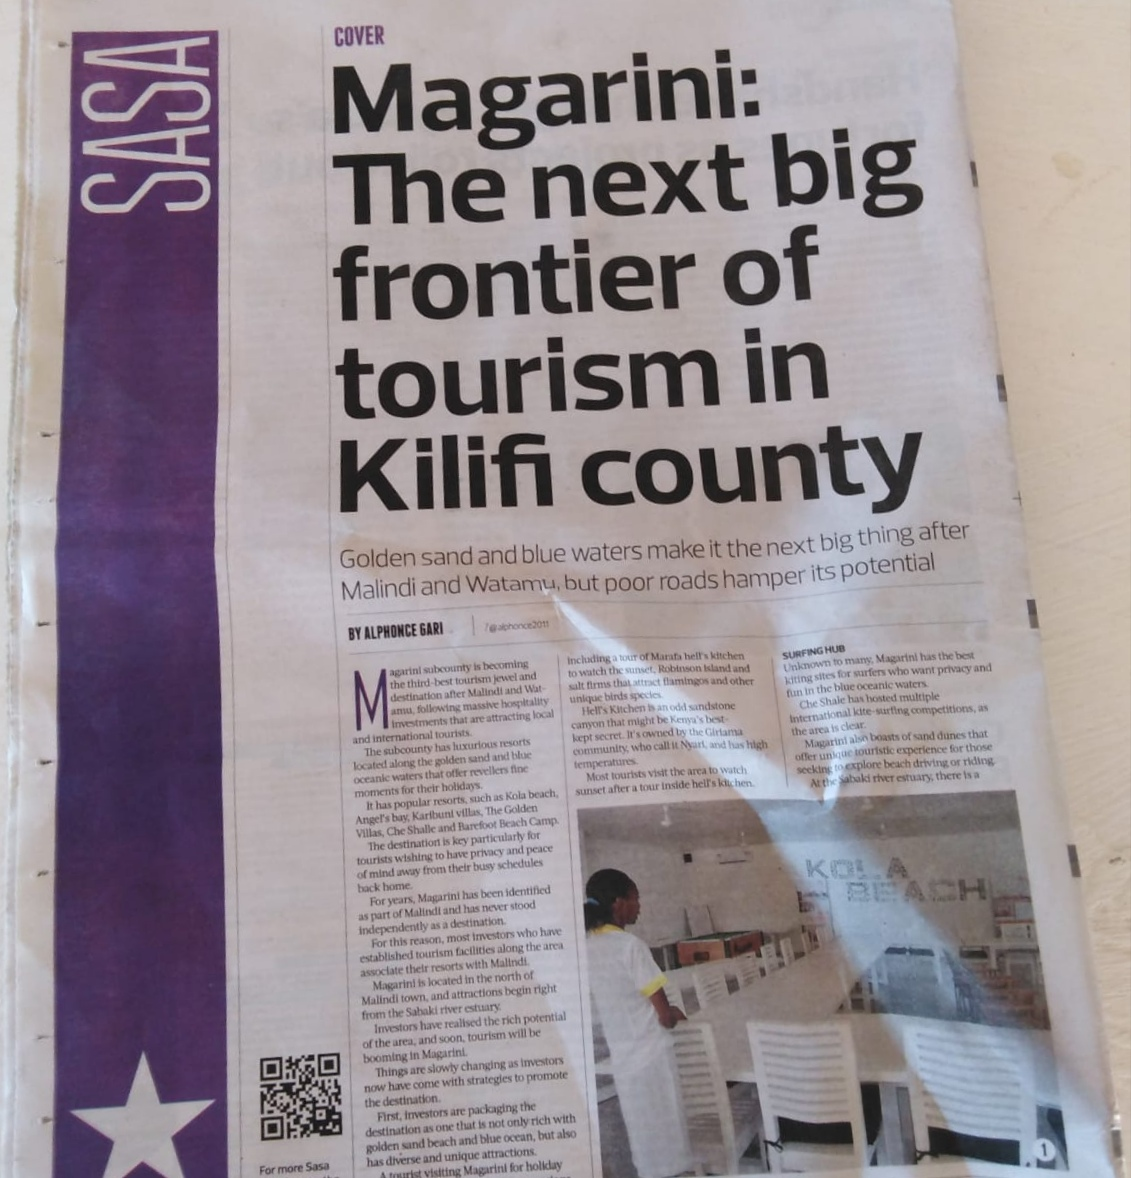 The article of The Star of 9-10 March 2019 talking about the grow of Magarini tourism